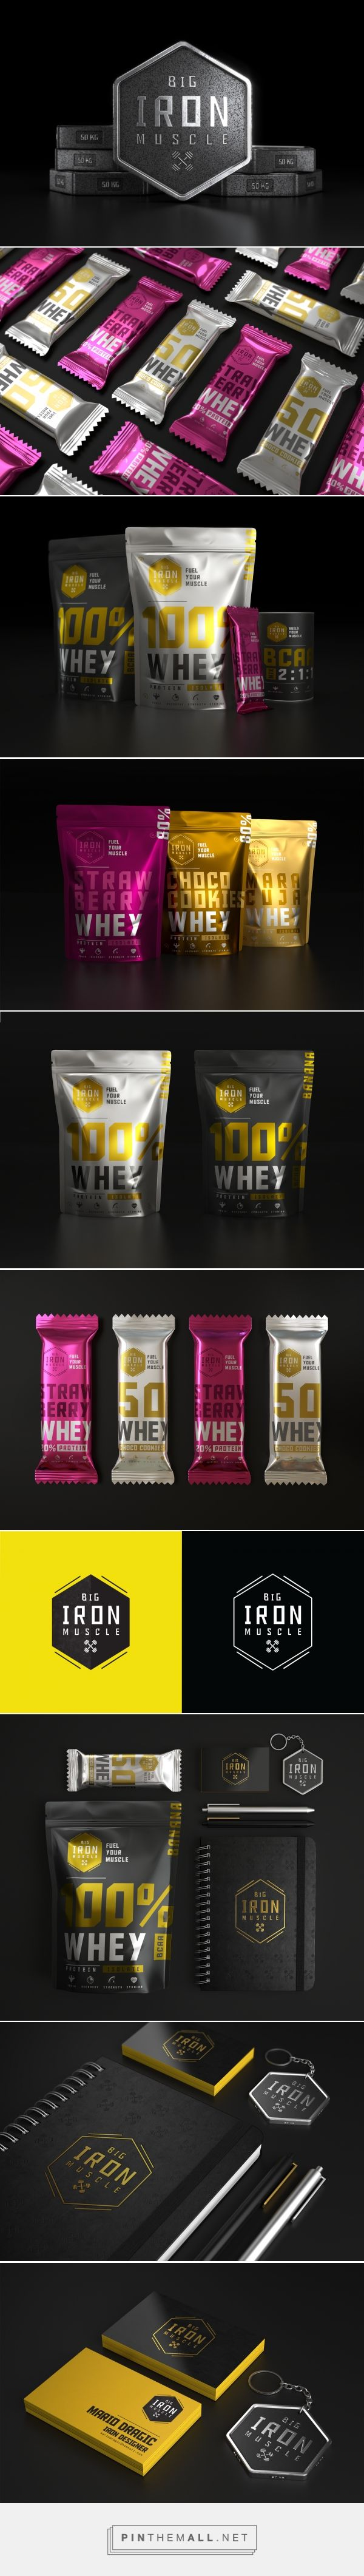 Big Iron Muscle supplements packaging design by Mario Dragic (Serbia)…